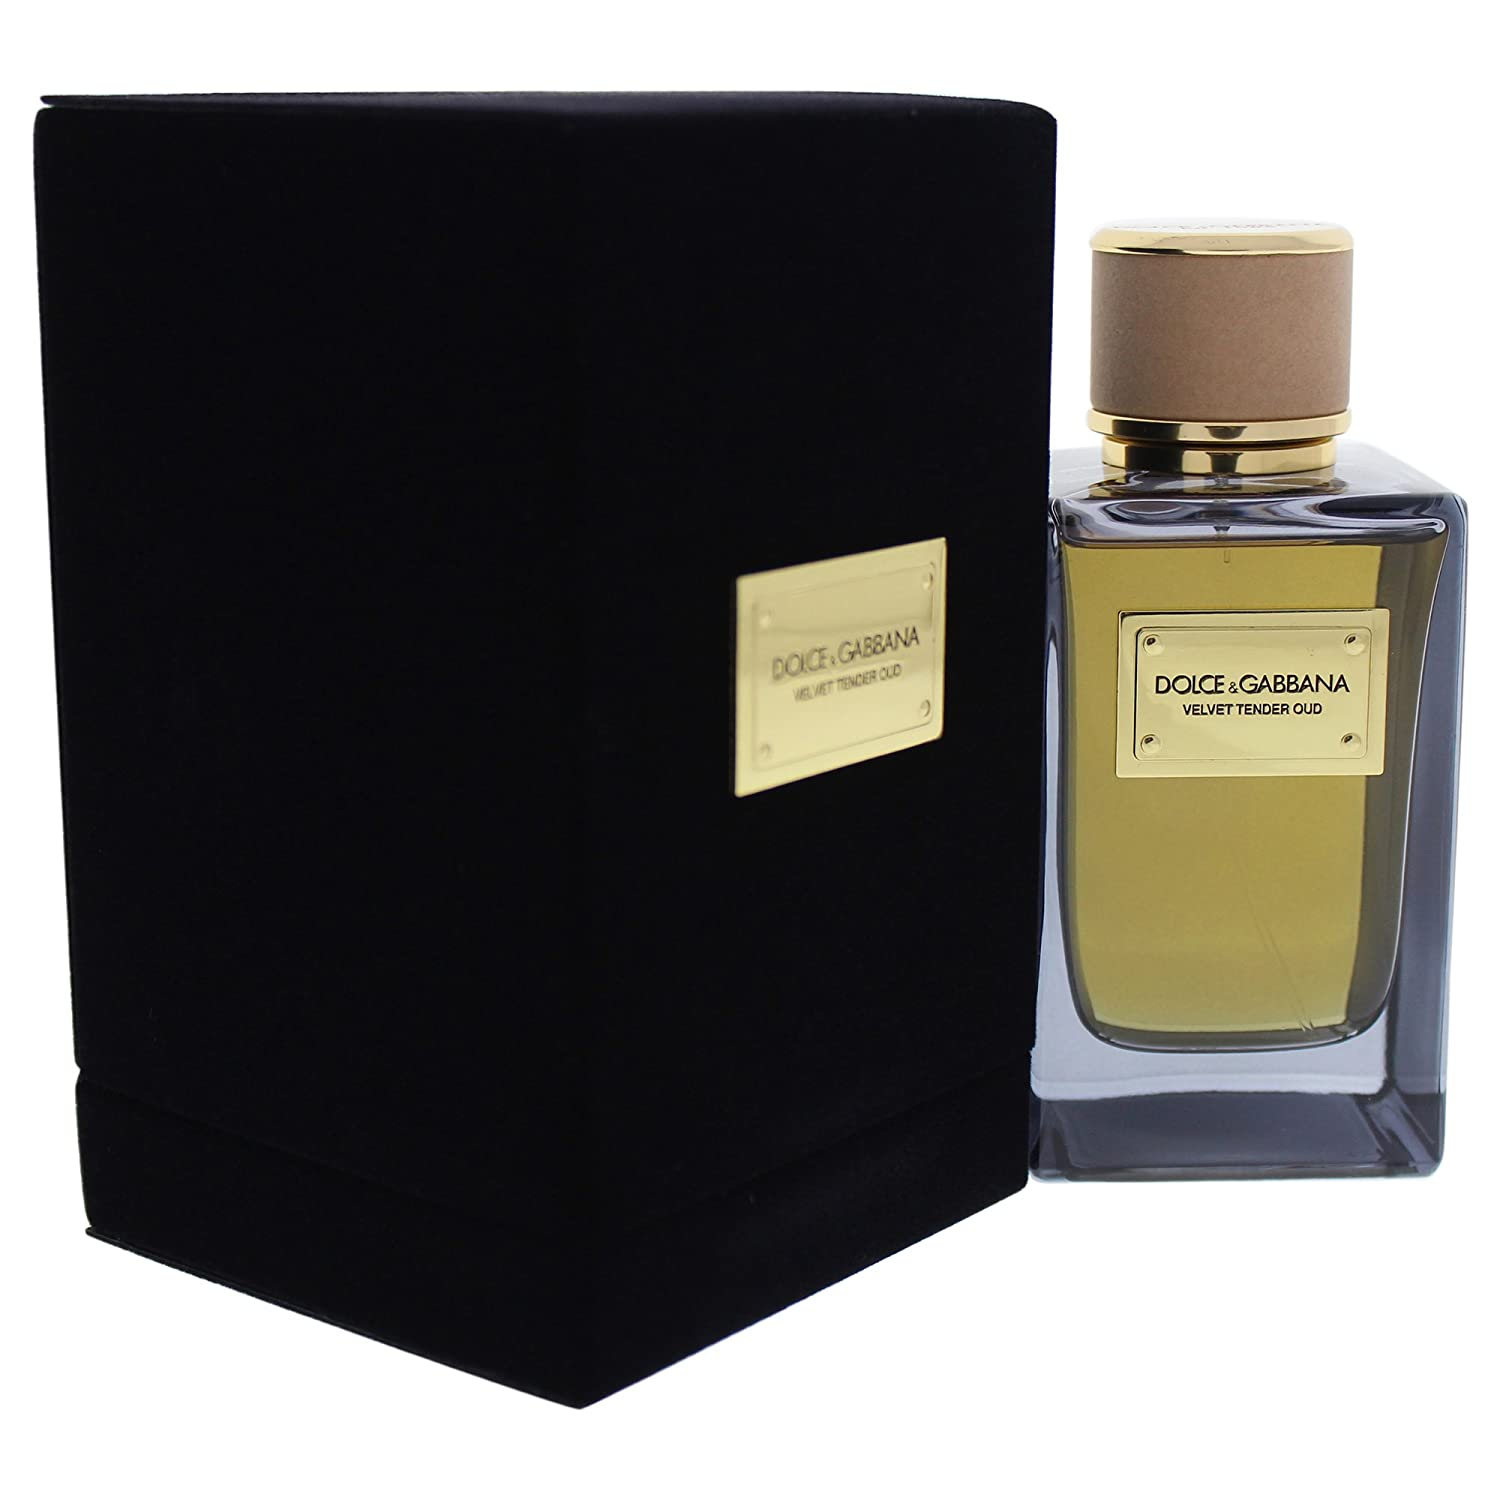 51182bd4a7faf2 Amazon.com   Dolce   Gabbana Velvet Tender Oud Eau de Parfum Spray, 5.0  Ounce   Beauty